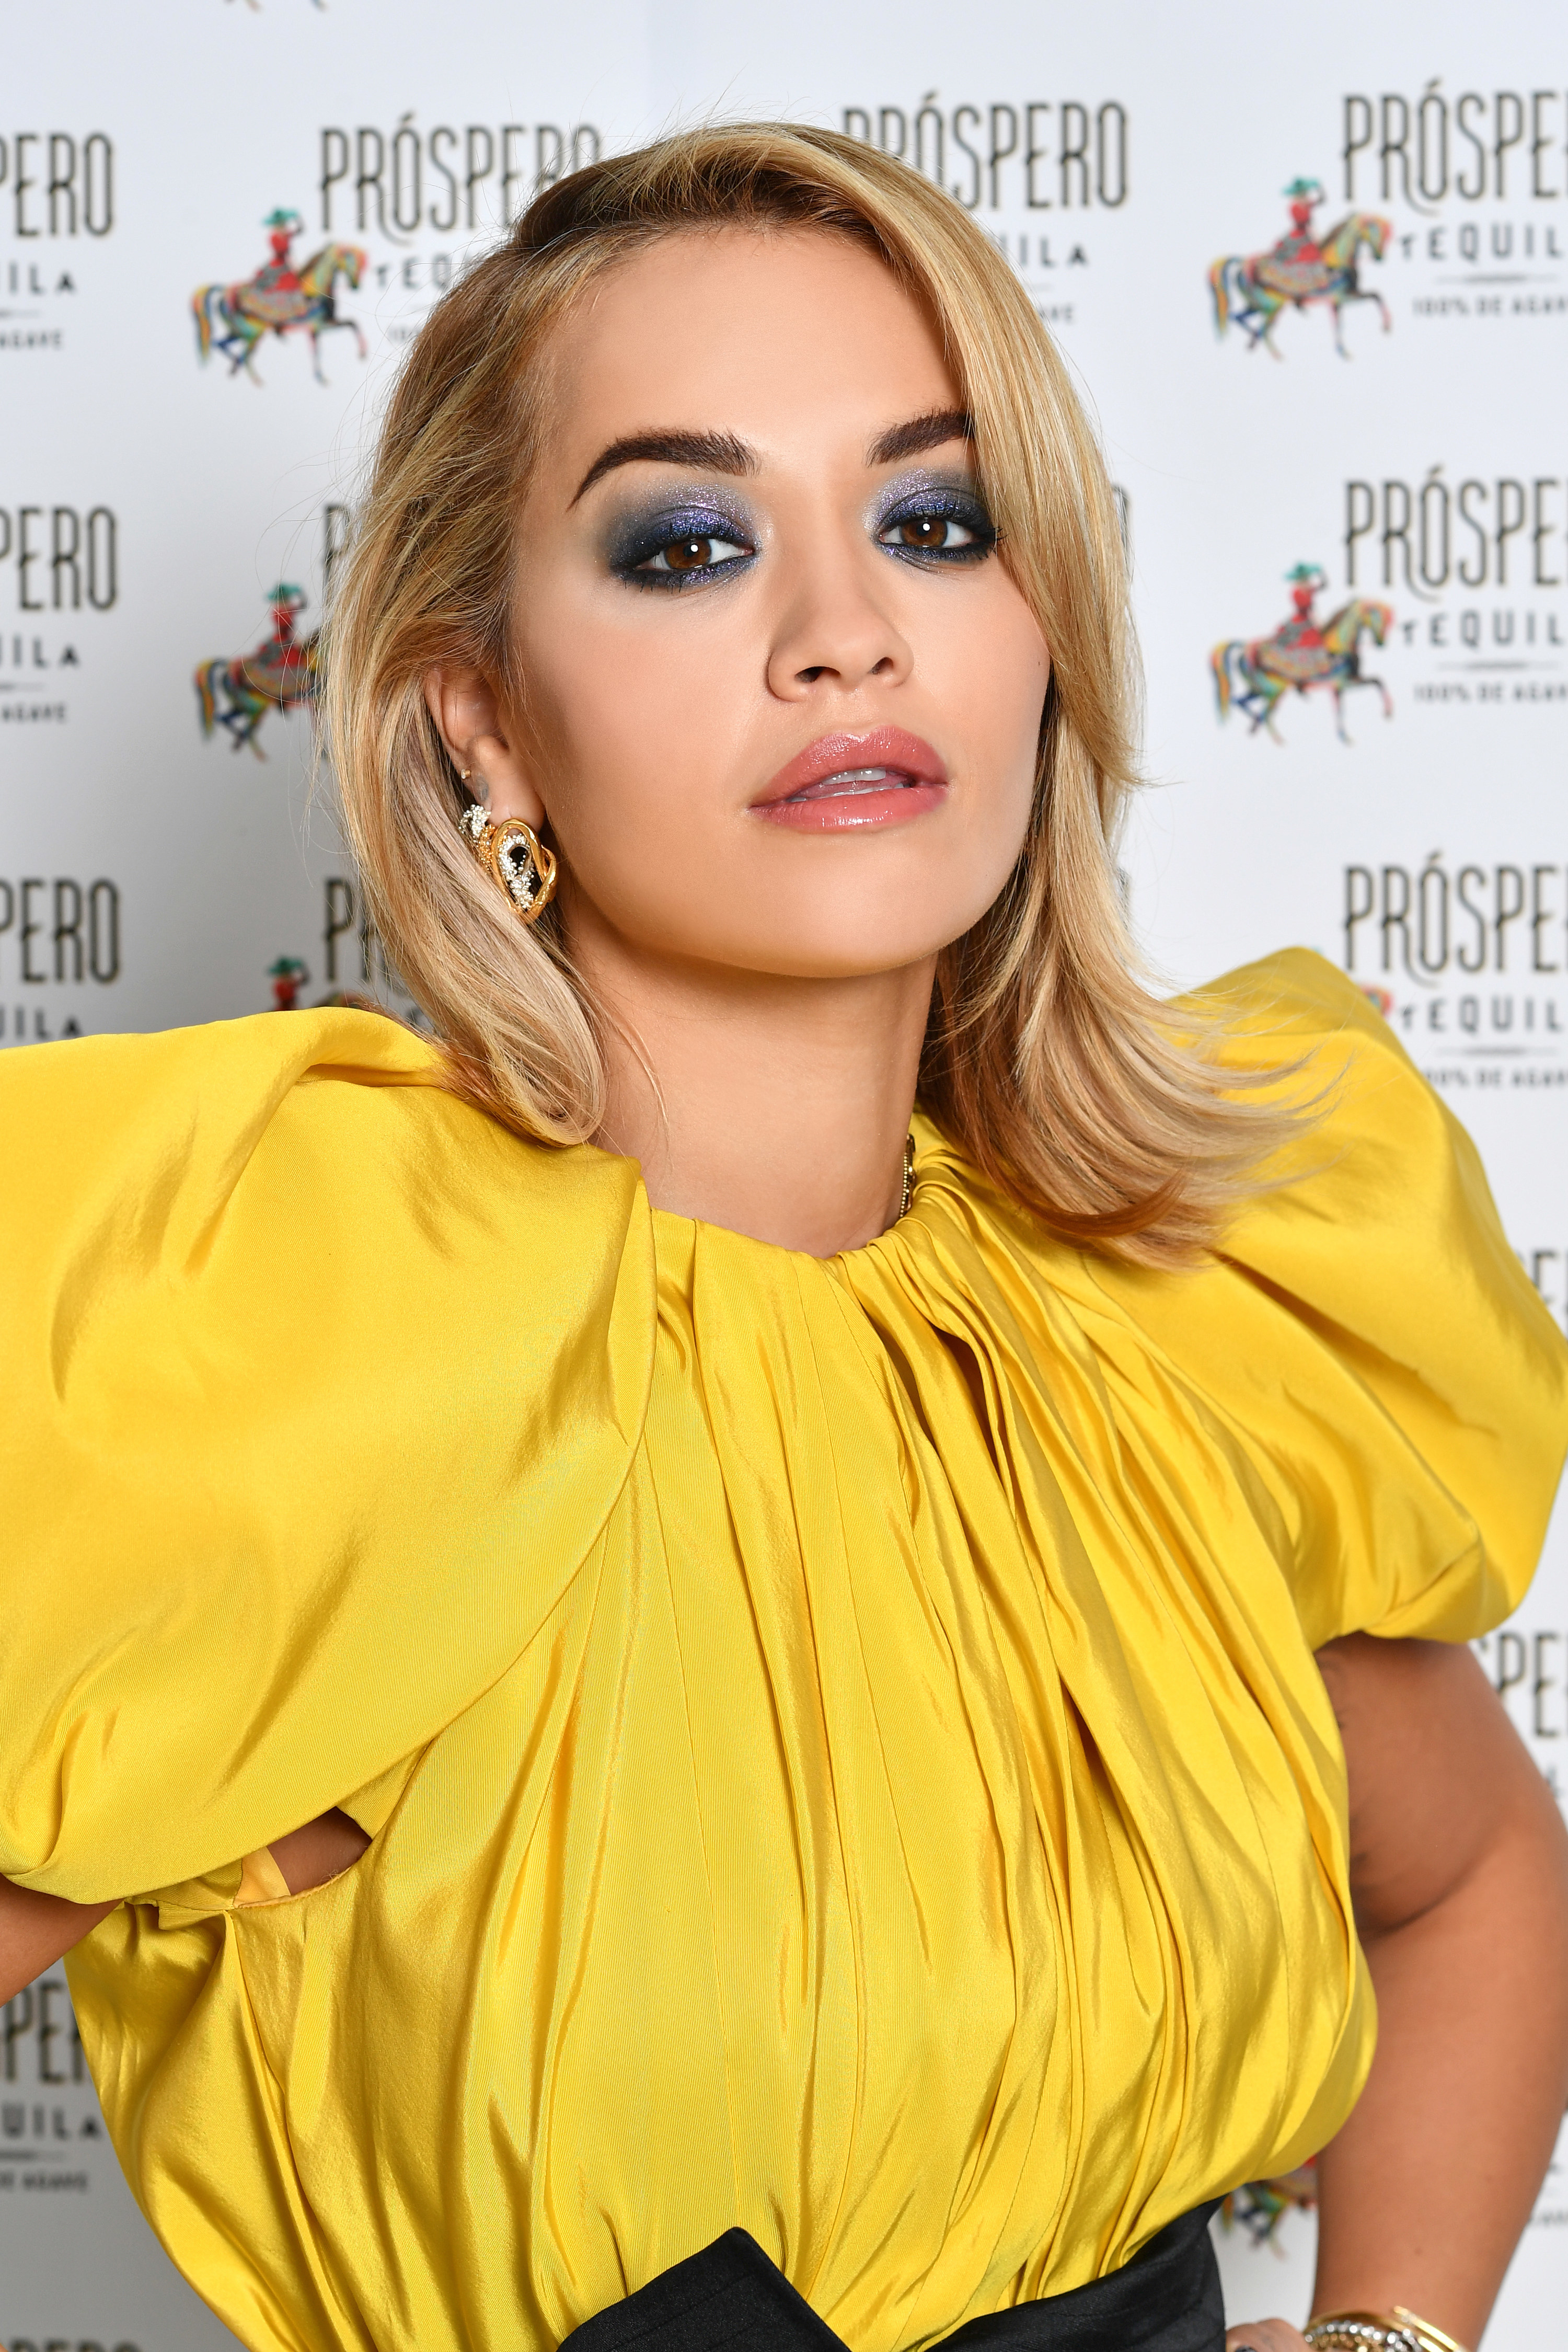 she's in yellow in a red carpet